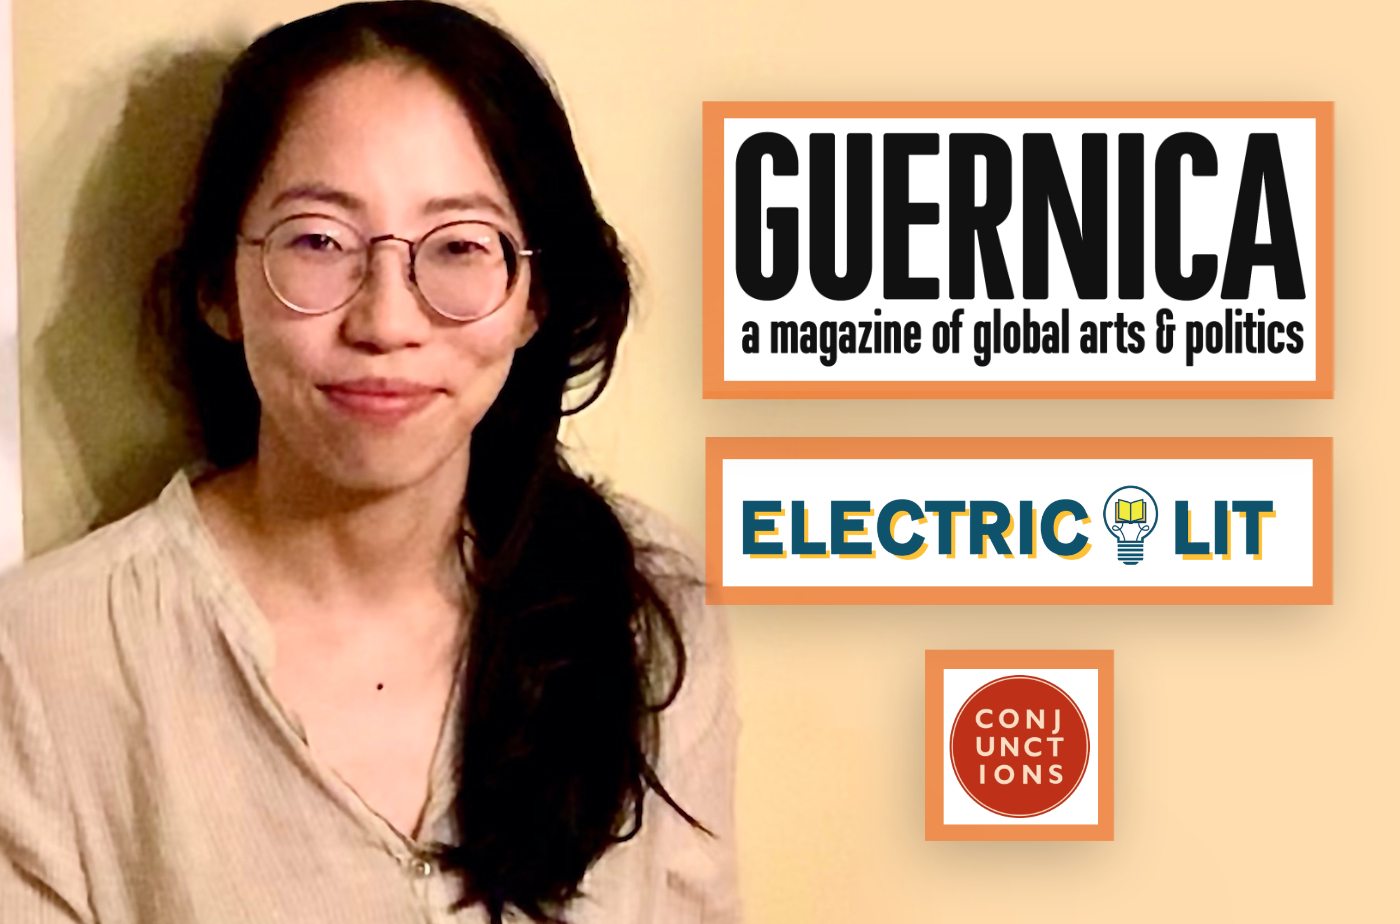 Catapult online classes: Cindy Juyoung Ok, 6-Week Online Generative Workshop: Writing From & About Dreams, Fiction, Poetry, Workshop